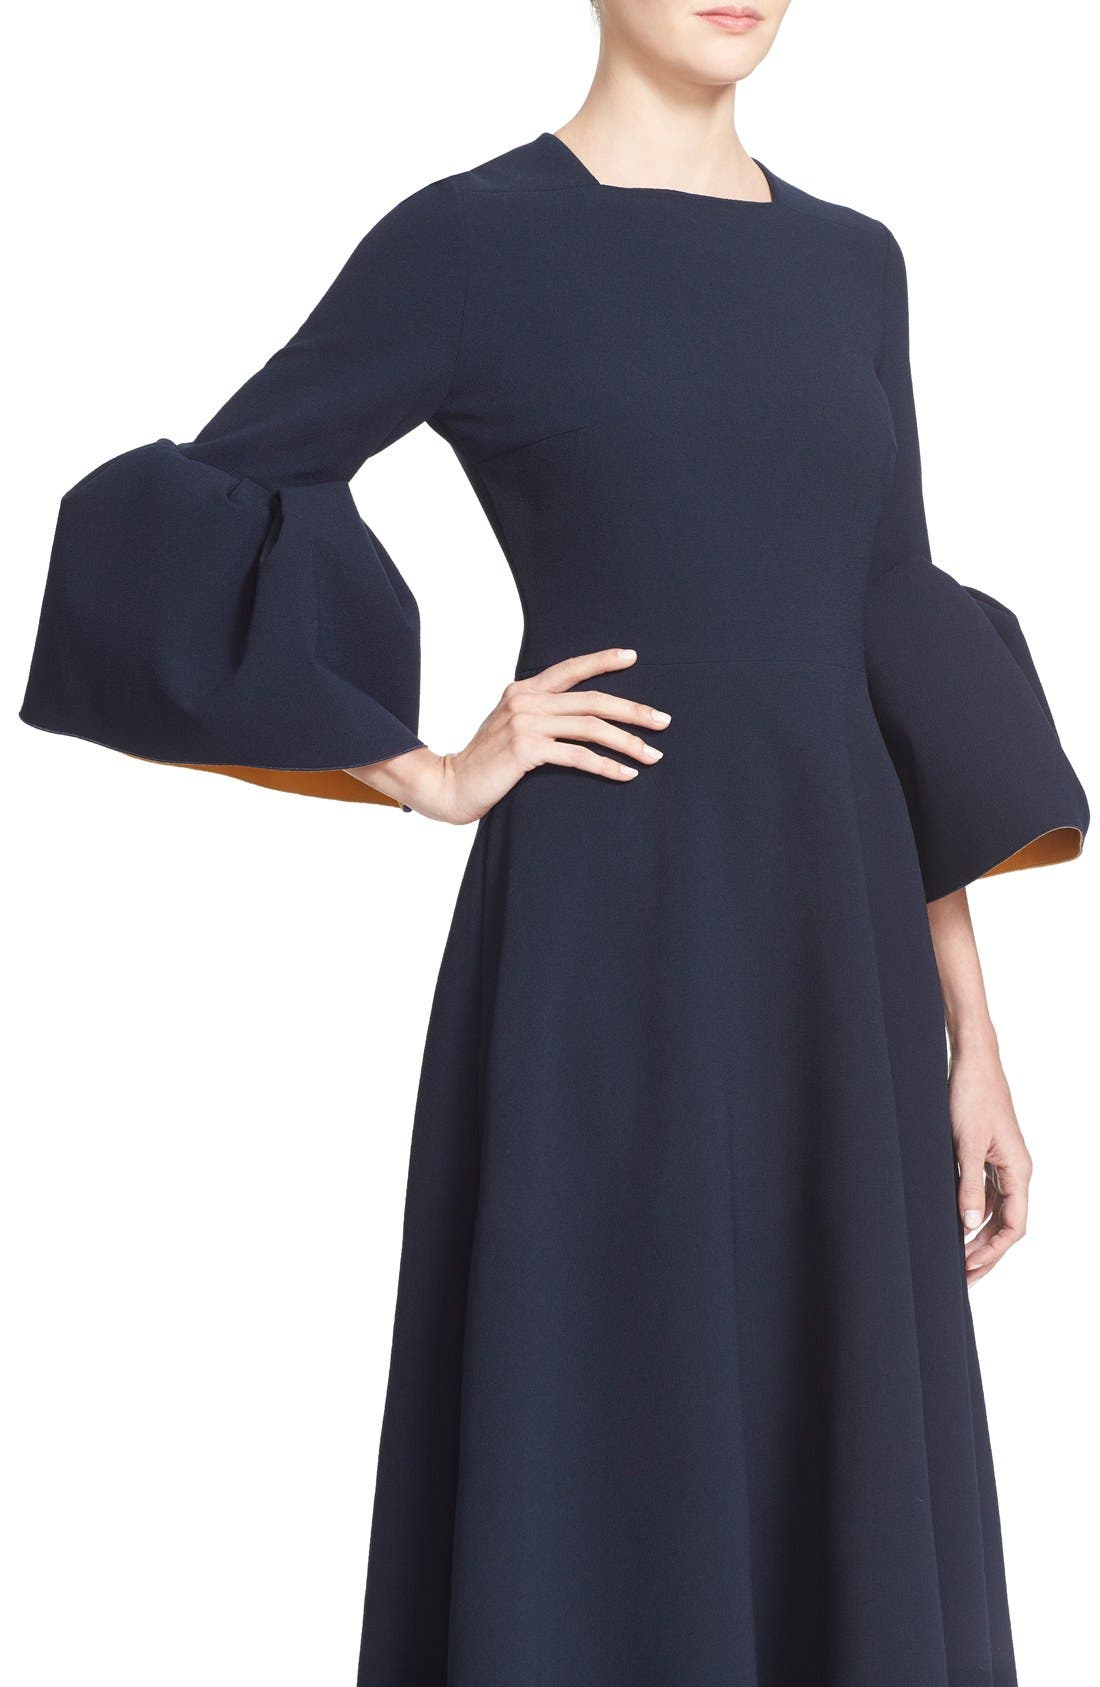 Turlin Flounce Sleeve Midi Dress,                             Alternate thumbnail 7, color,                             Navy/ Ochre